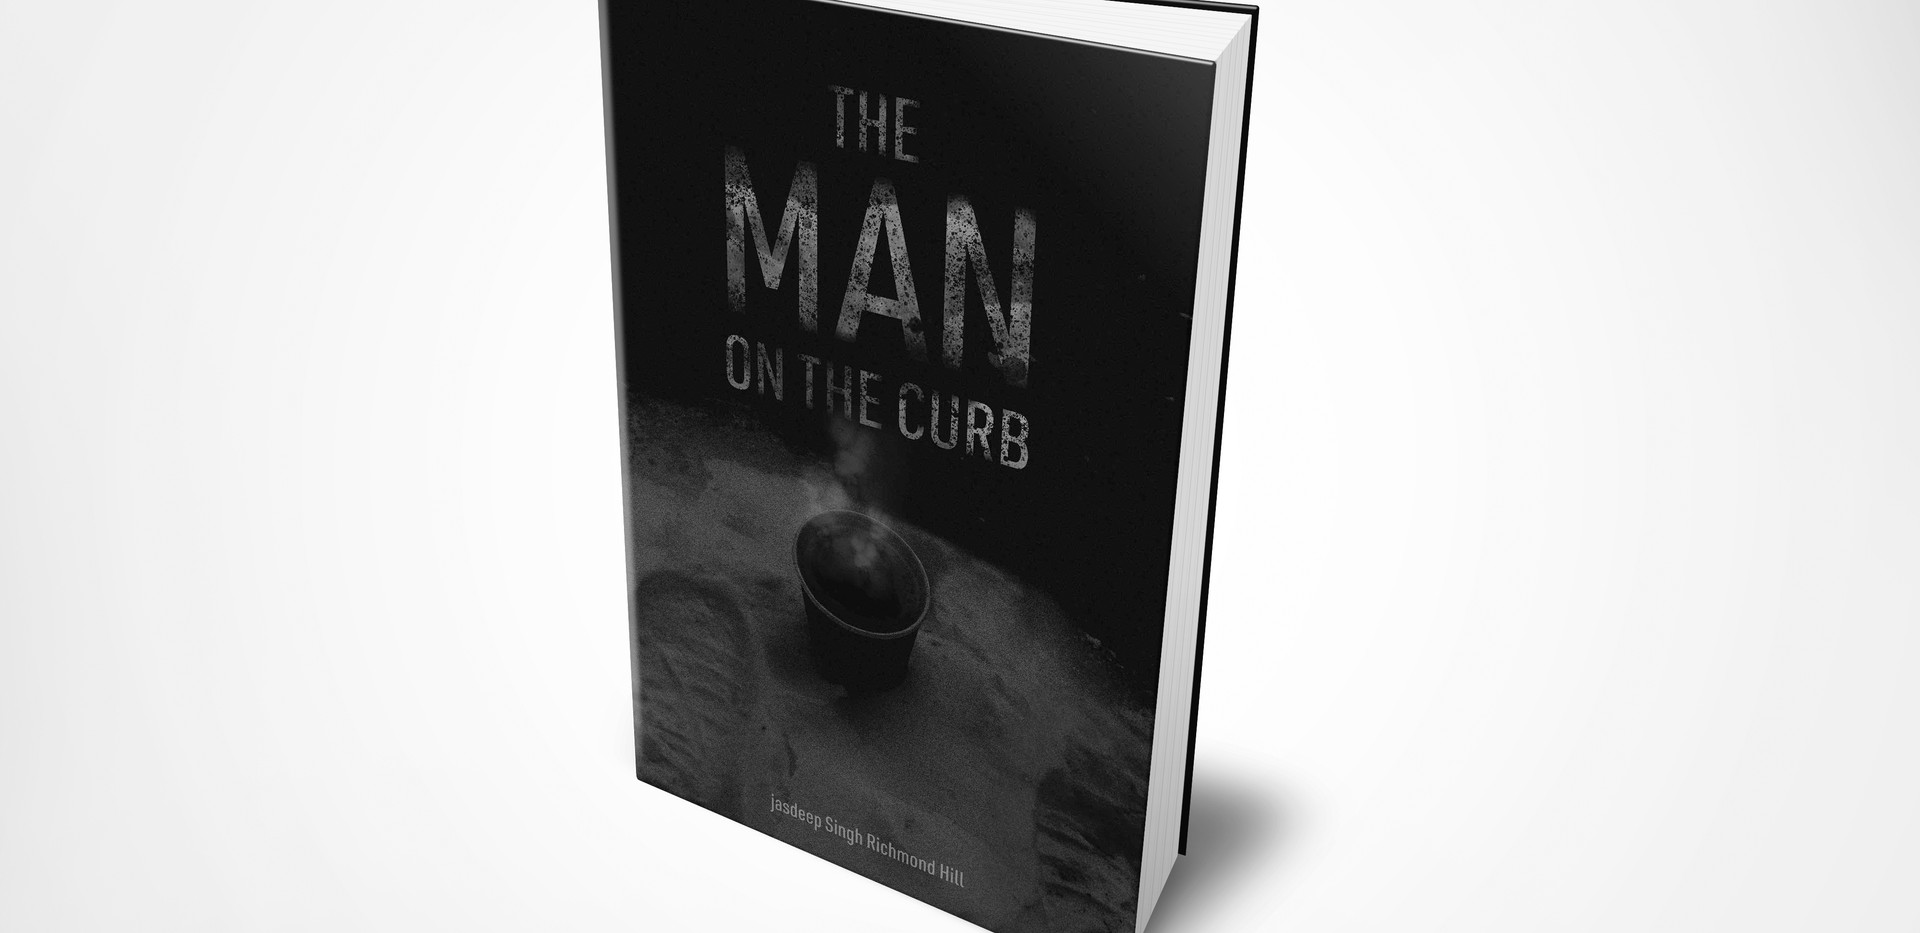 The Man on the Curb